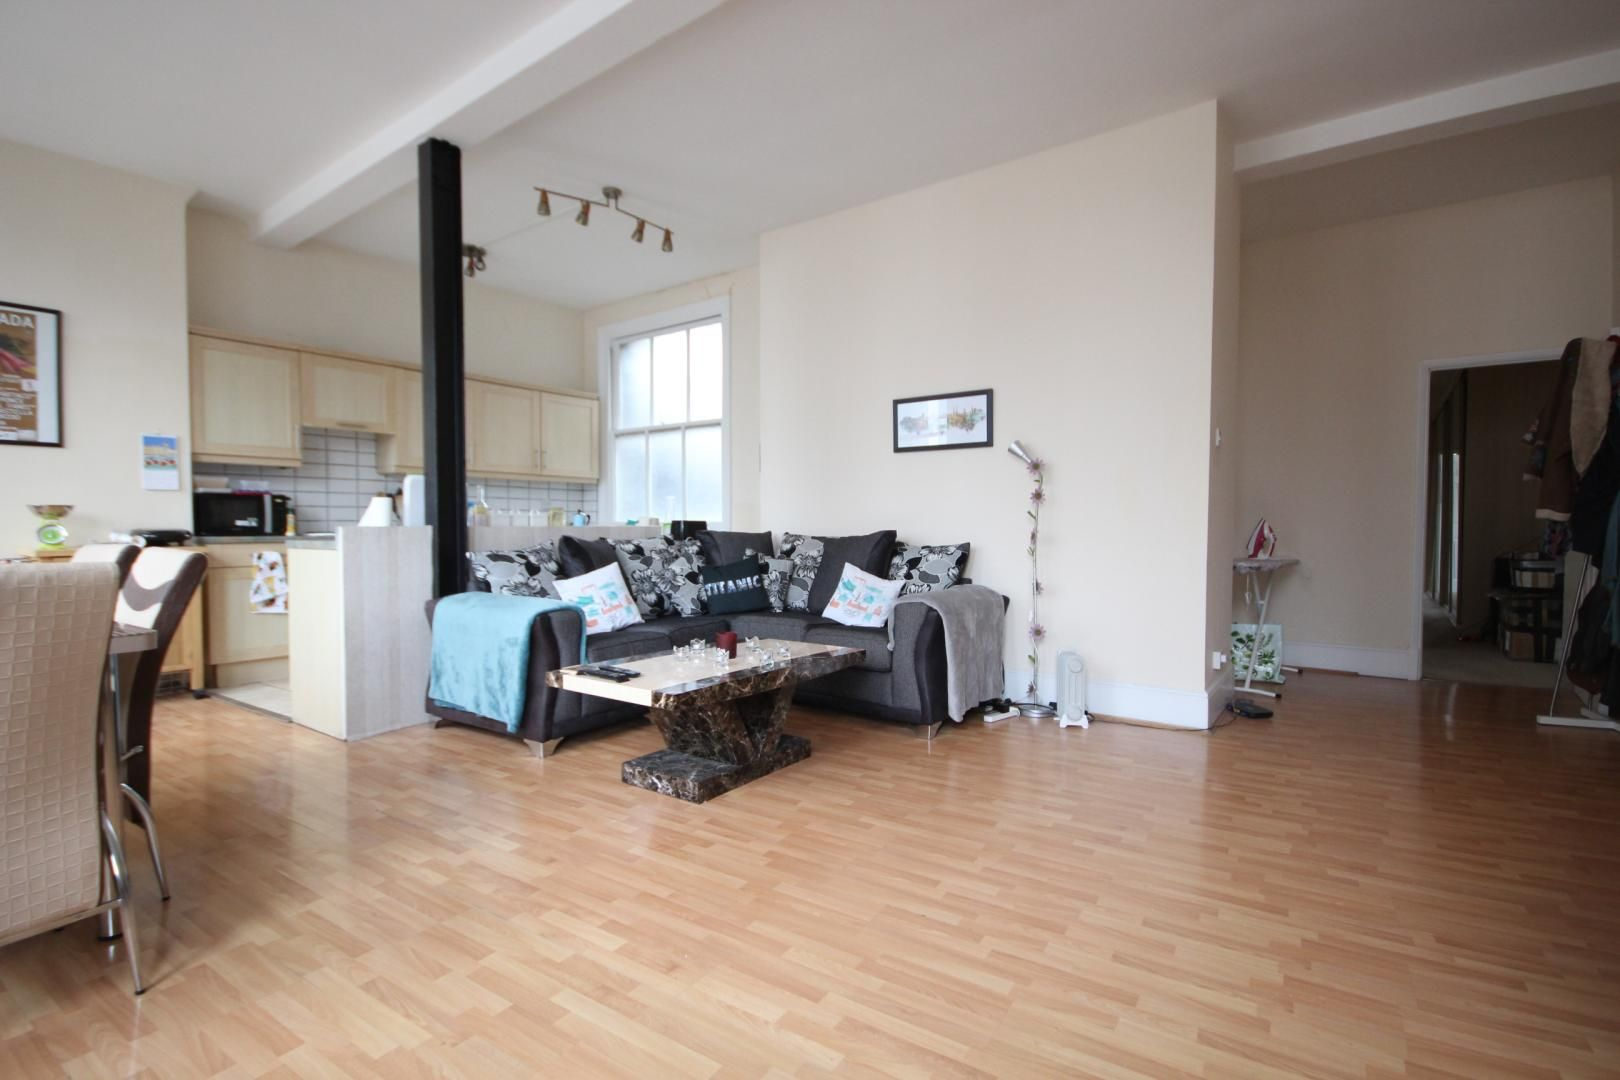 2 bed flat to rent in Whitechapel High Street, E1